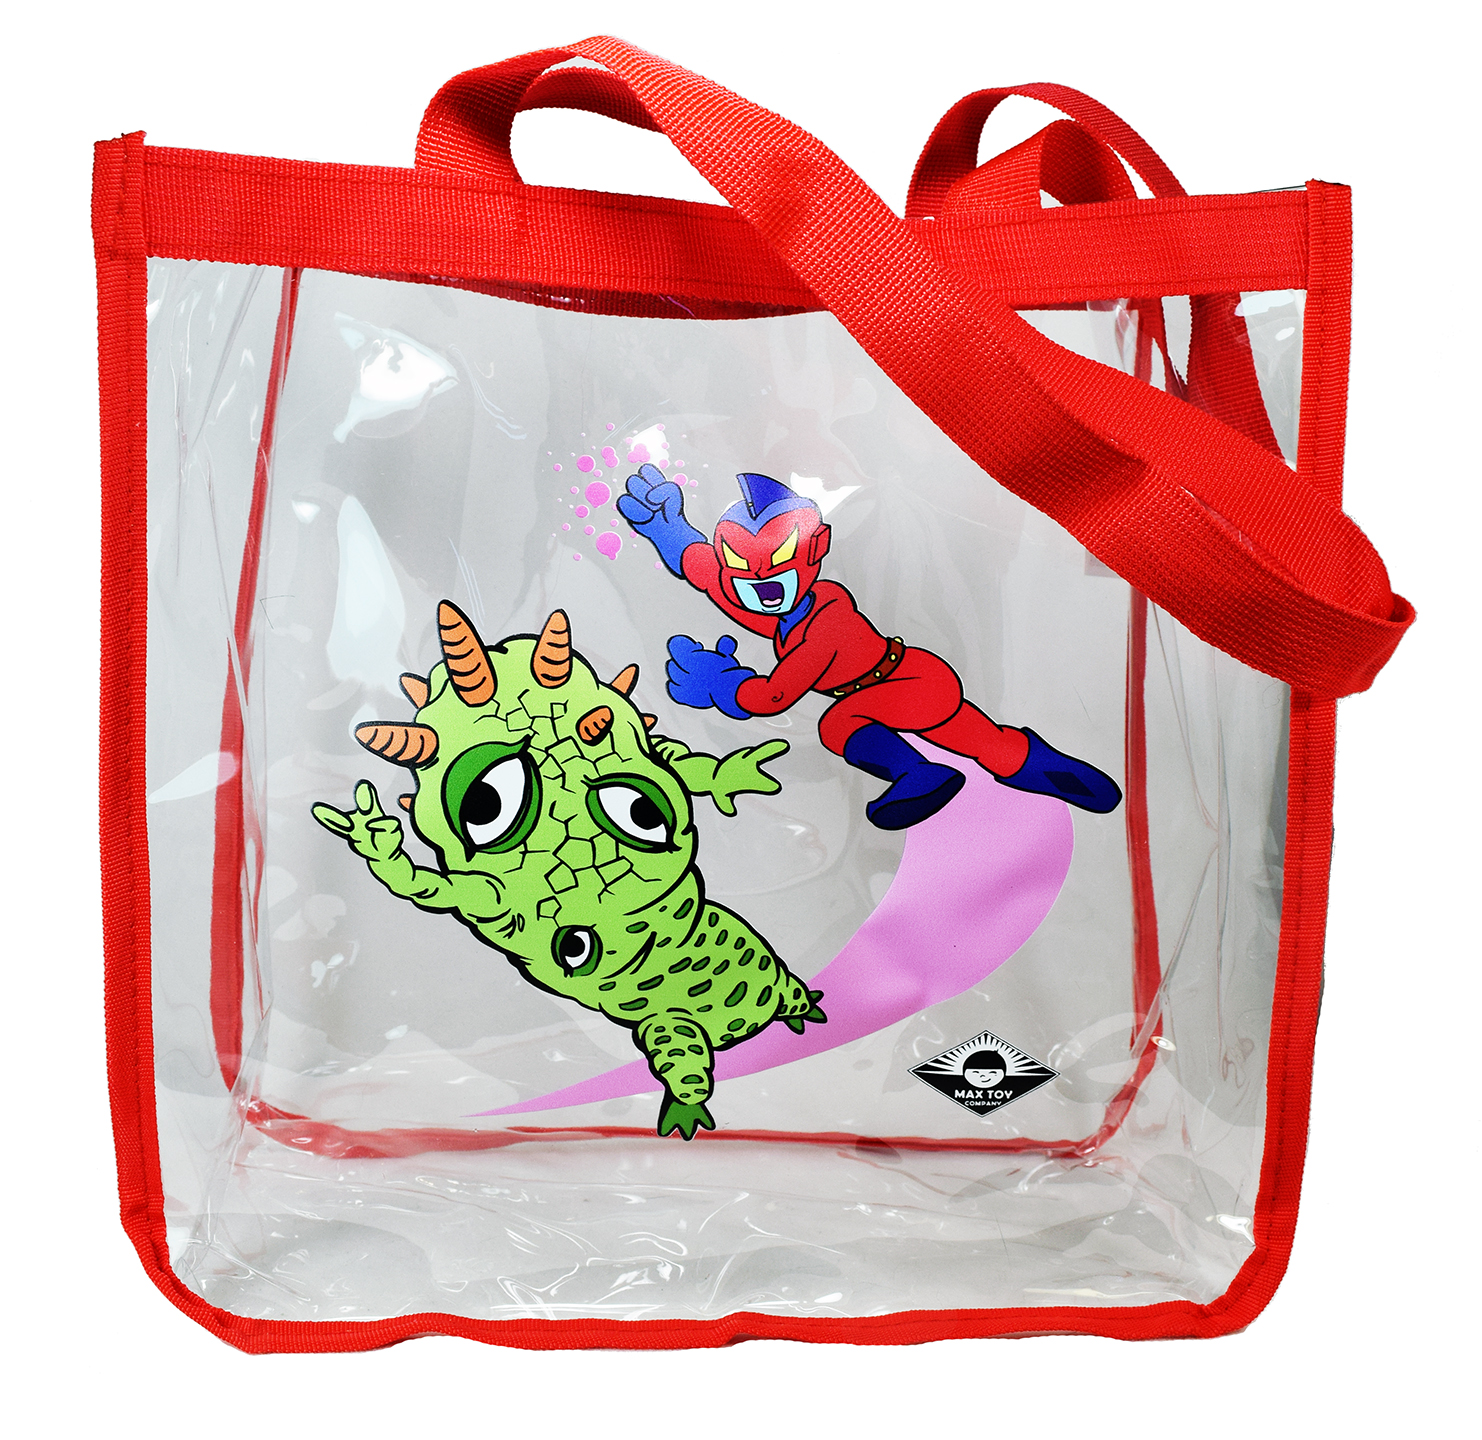 Clear Vinyl Max Toy Company shopping bag with handles Kaiju Eyezon